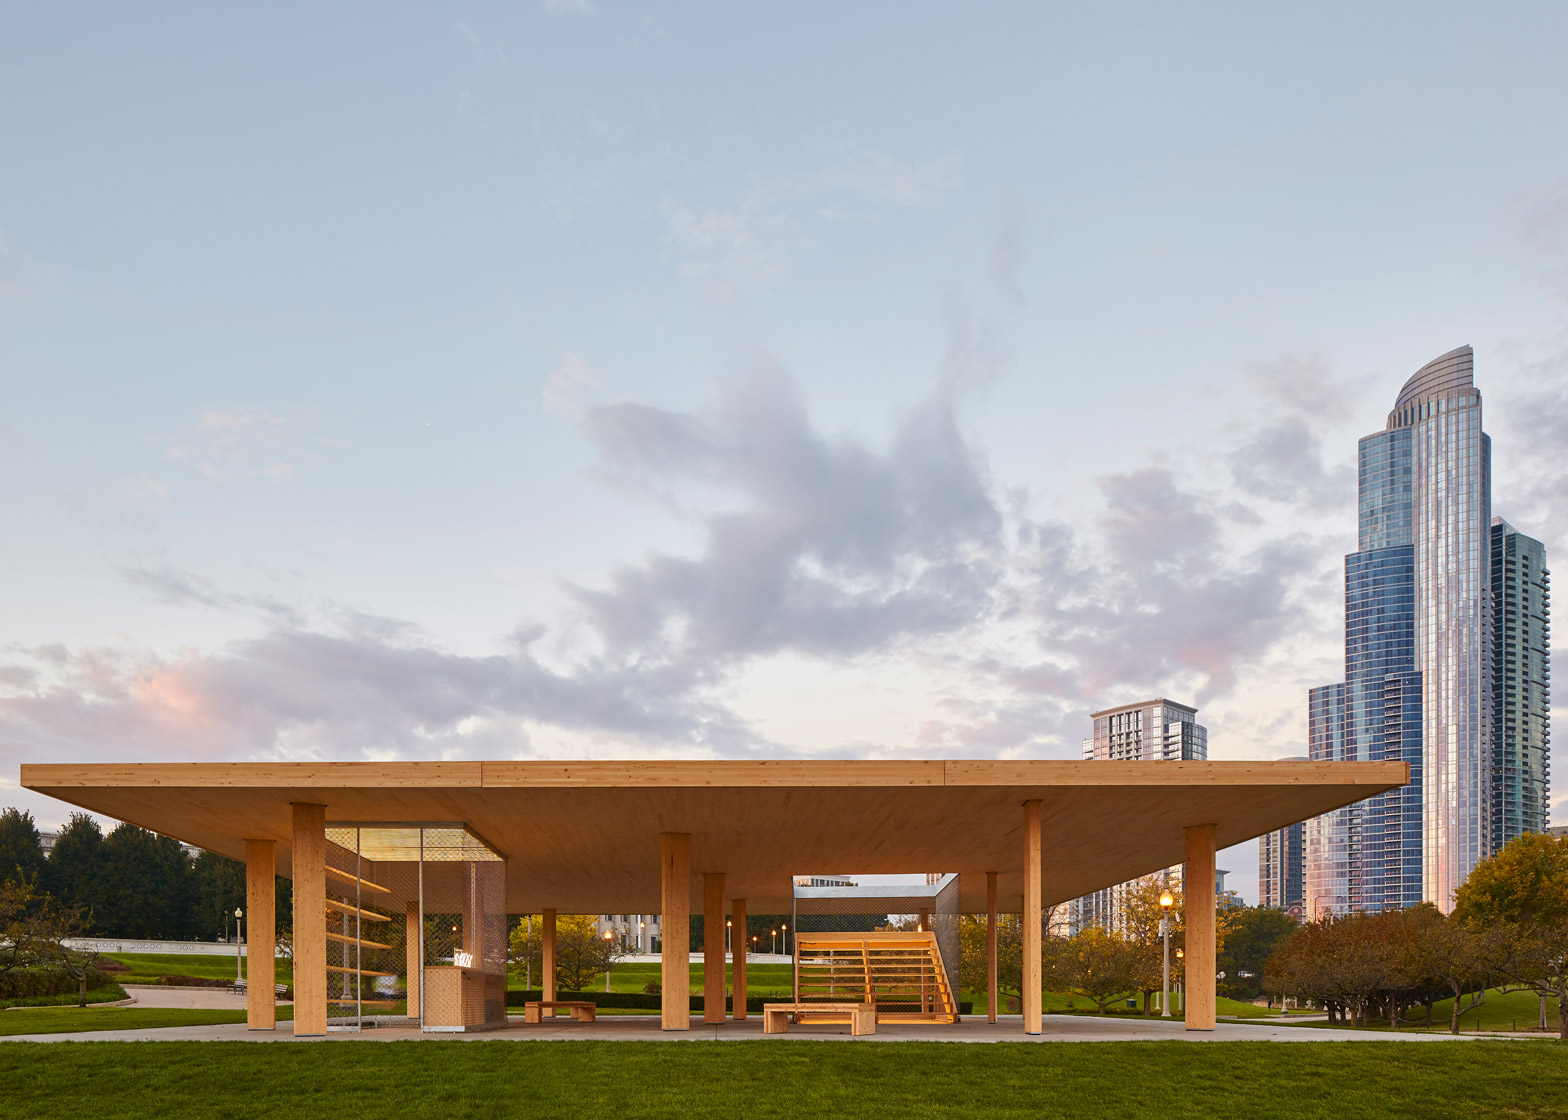 Lakefront Kiosk by Ultramoderne for the Chicago Architecture Biennial 2015